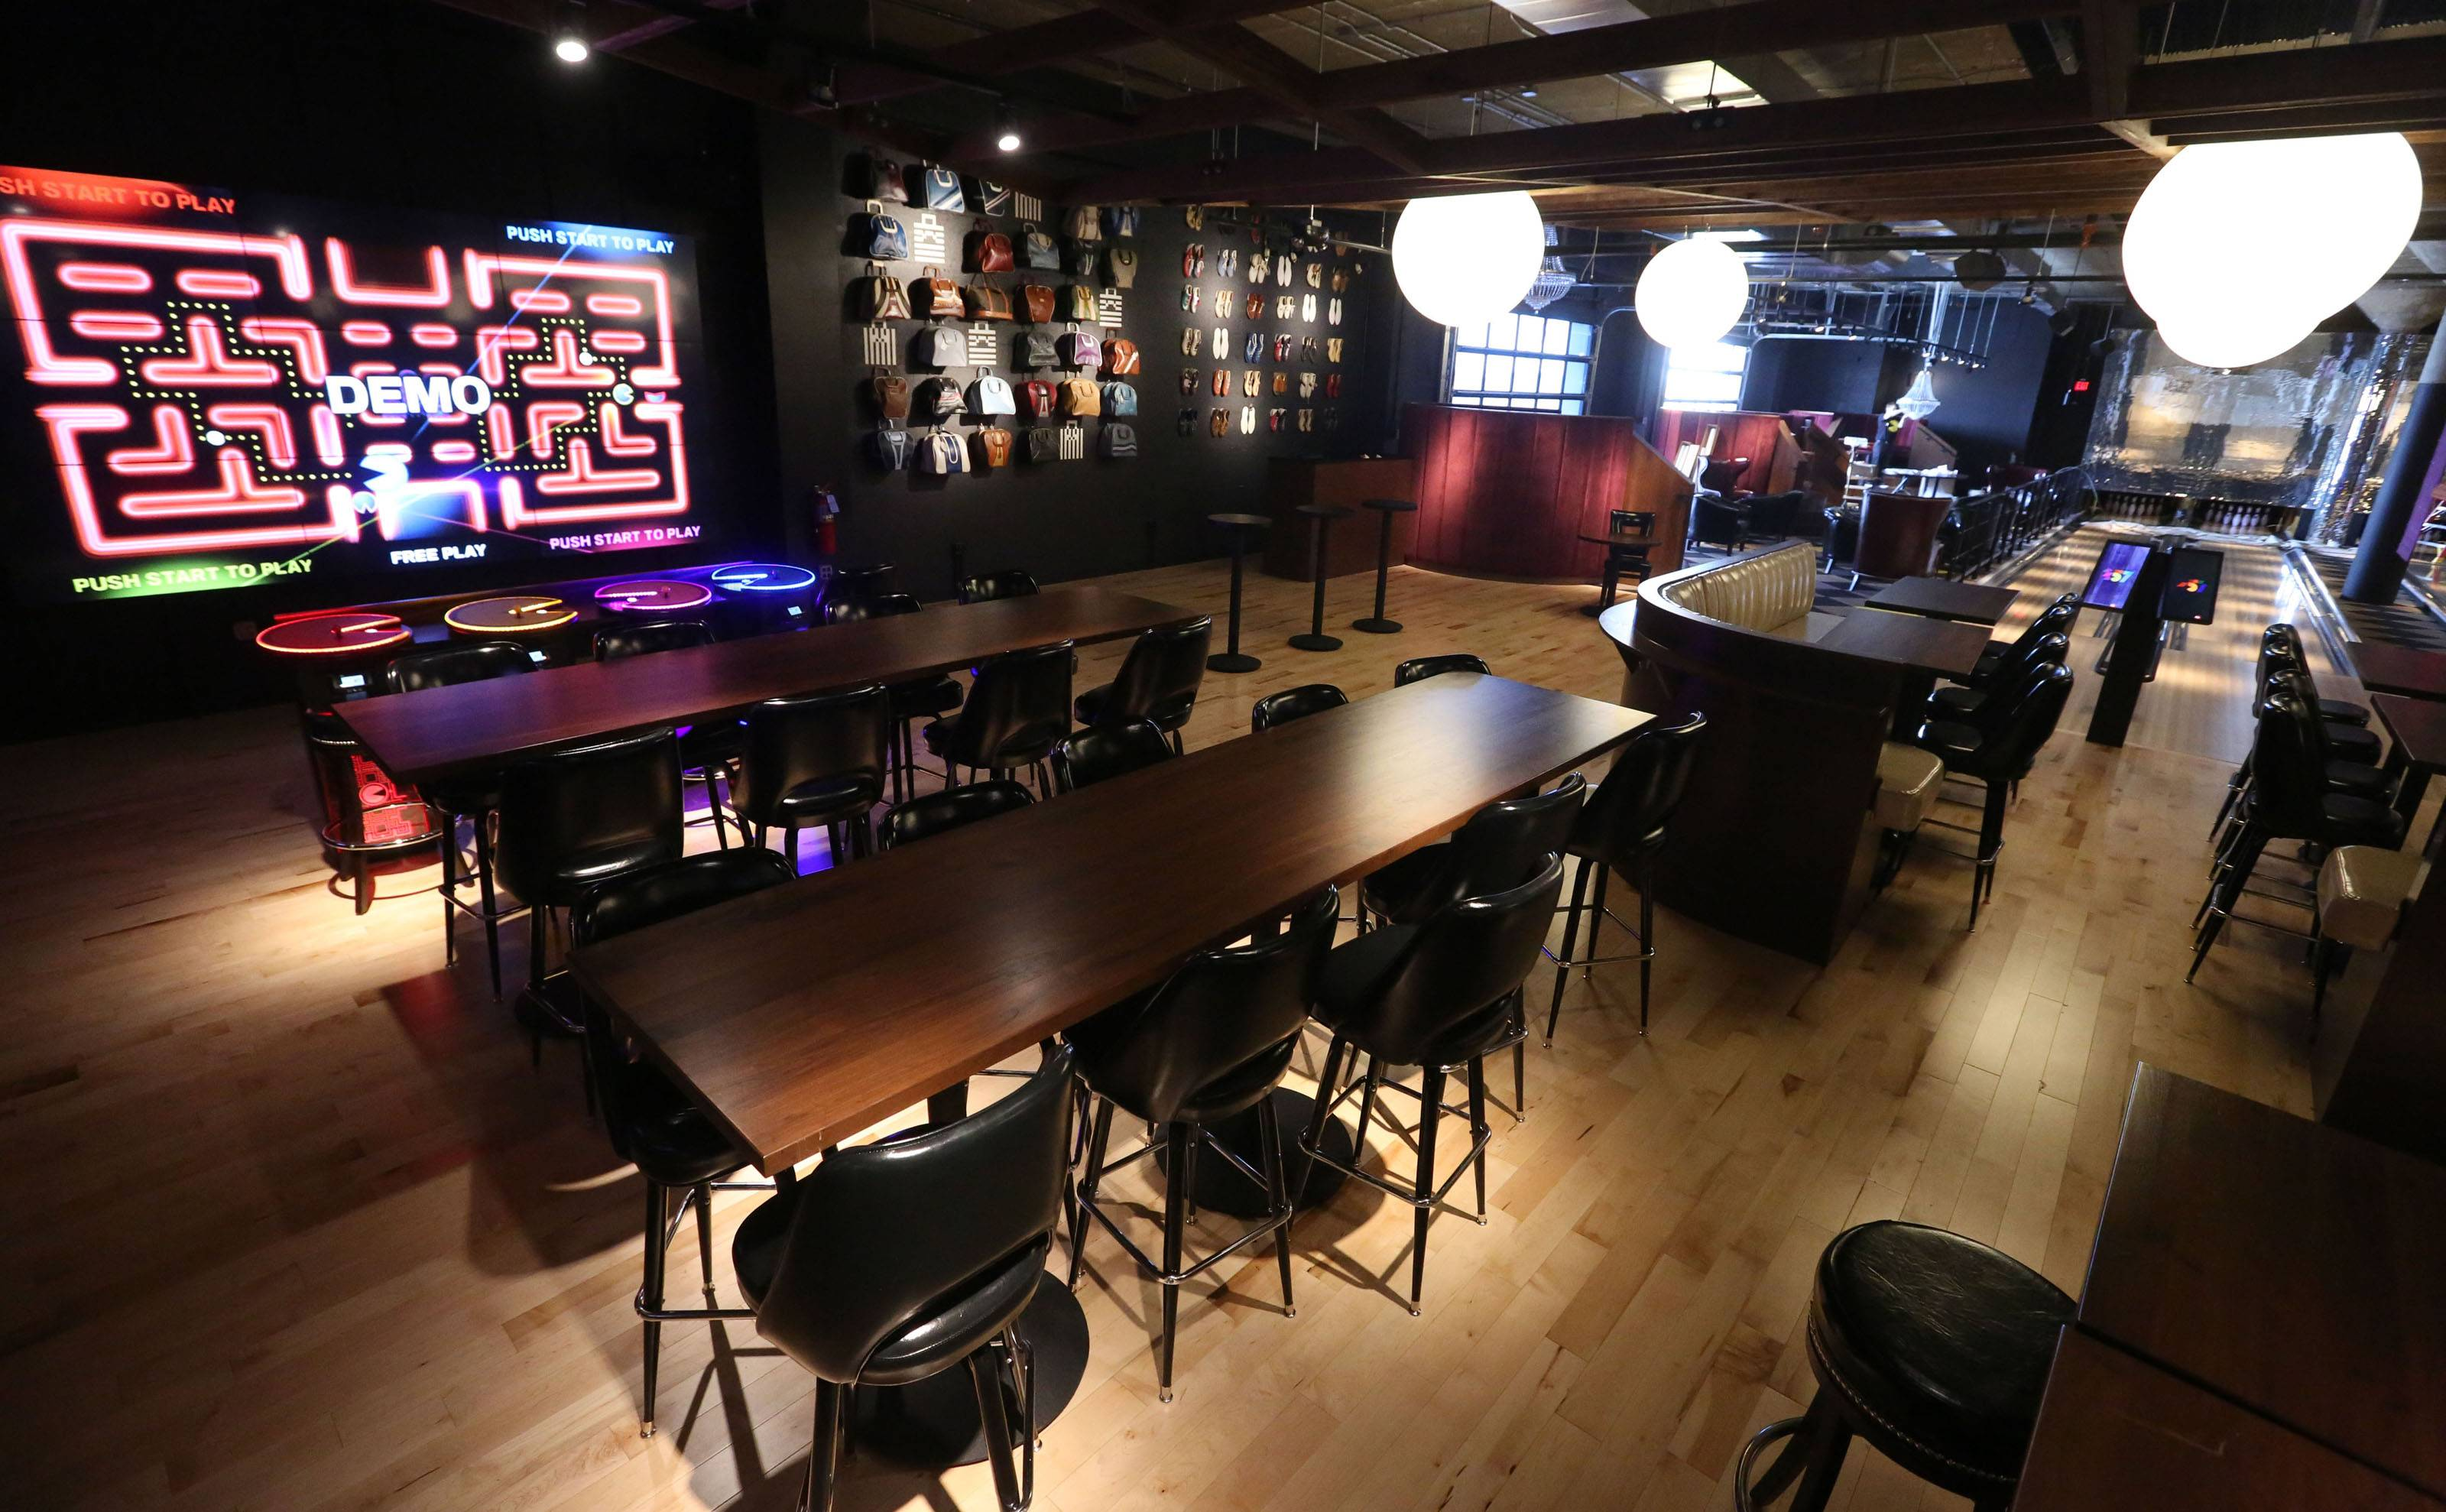 Pac-Man-themed restaurant opens at Woodfield